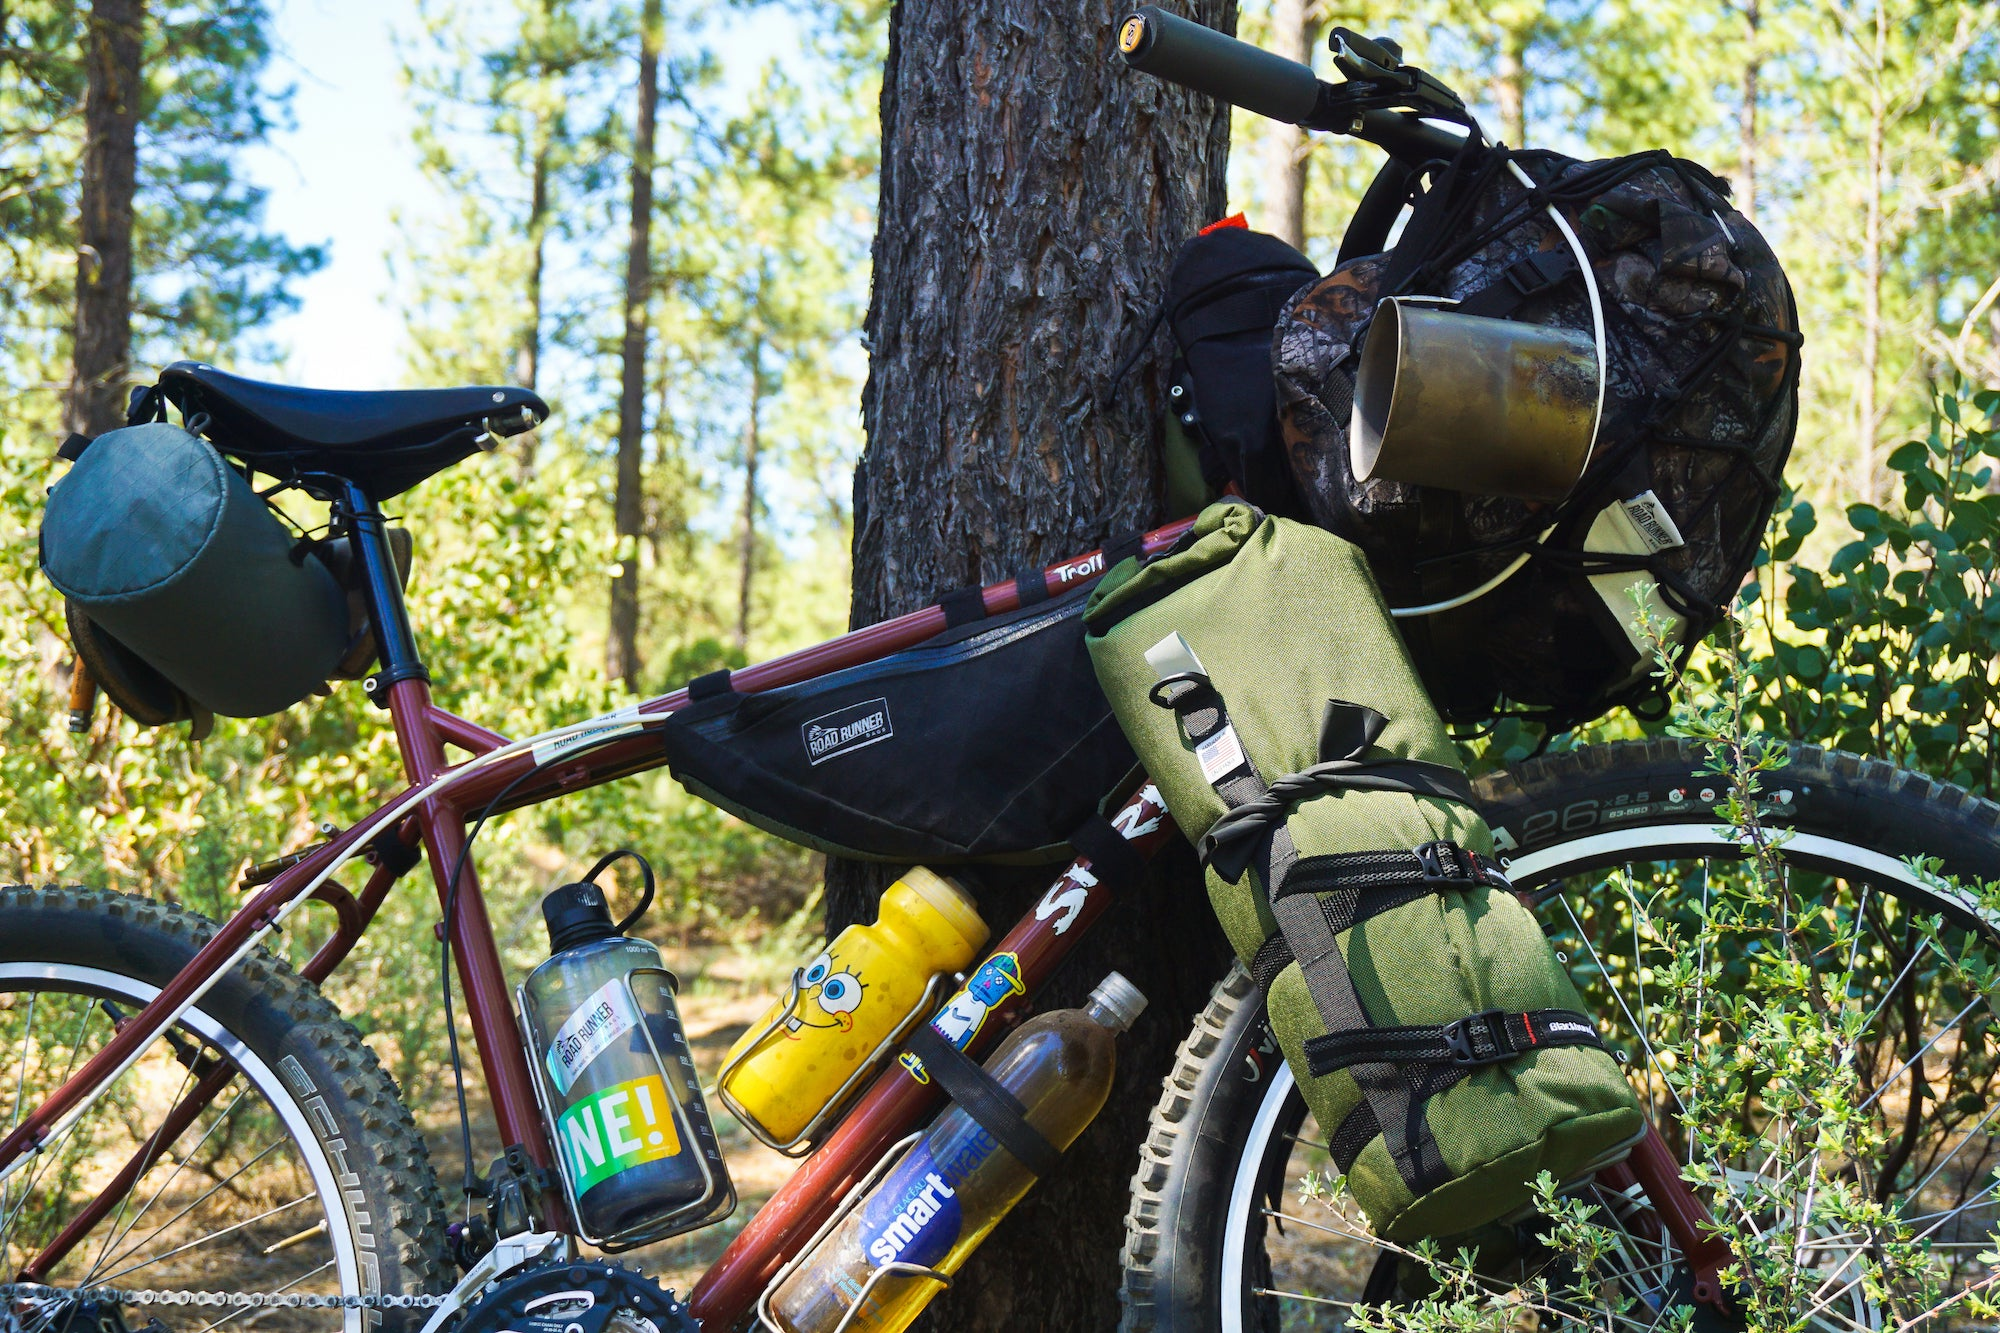 Road Runner Bags Buoy Bag for camping, backpacking and bikepacking